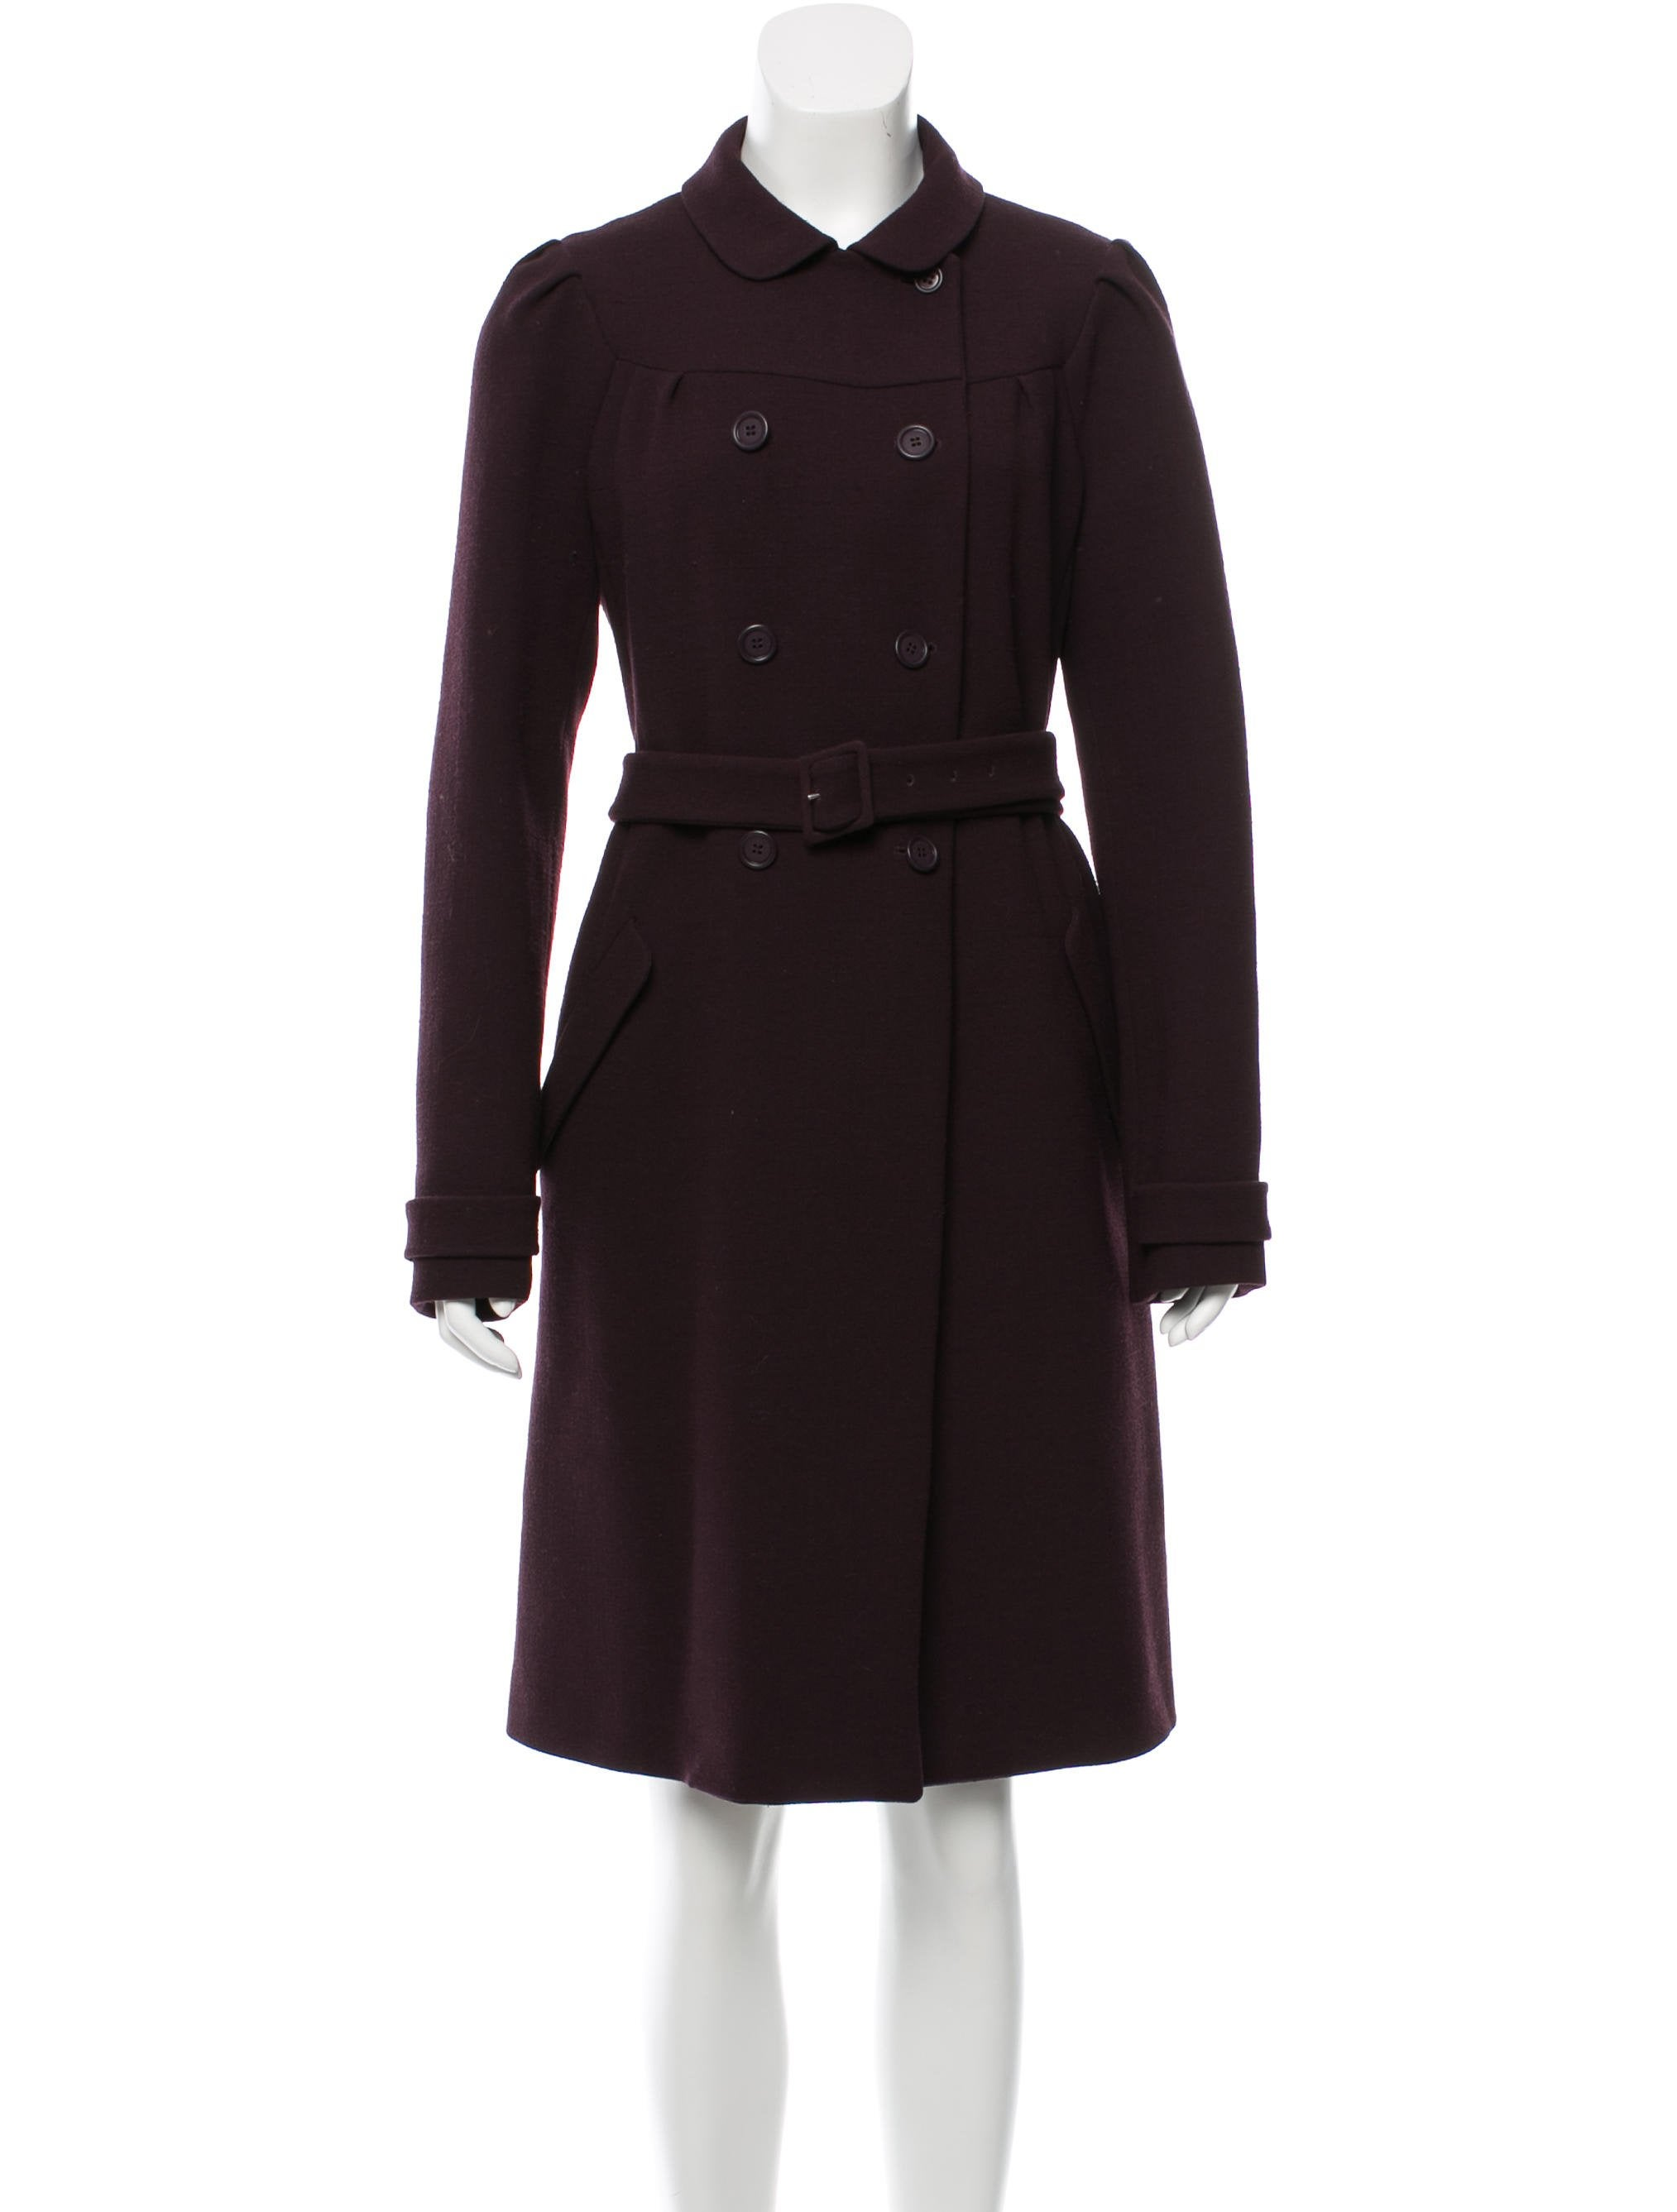 Free shipping BOTH ways on calvin klein double breasted belted wool trench coat, from our vast selection of styles. Fast delivery, and 24/7/ real-person service with a .